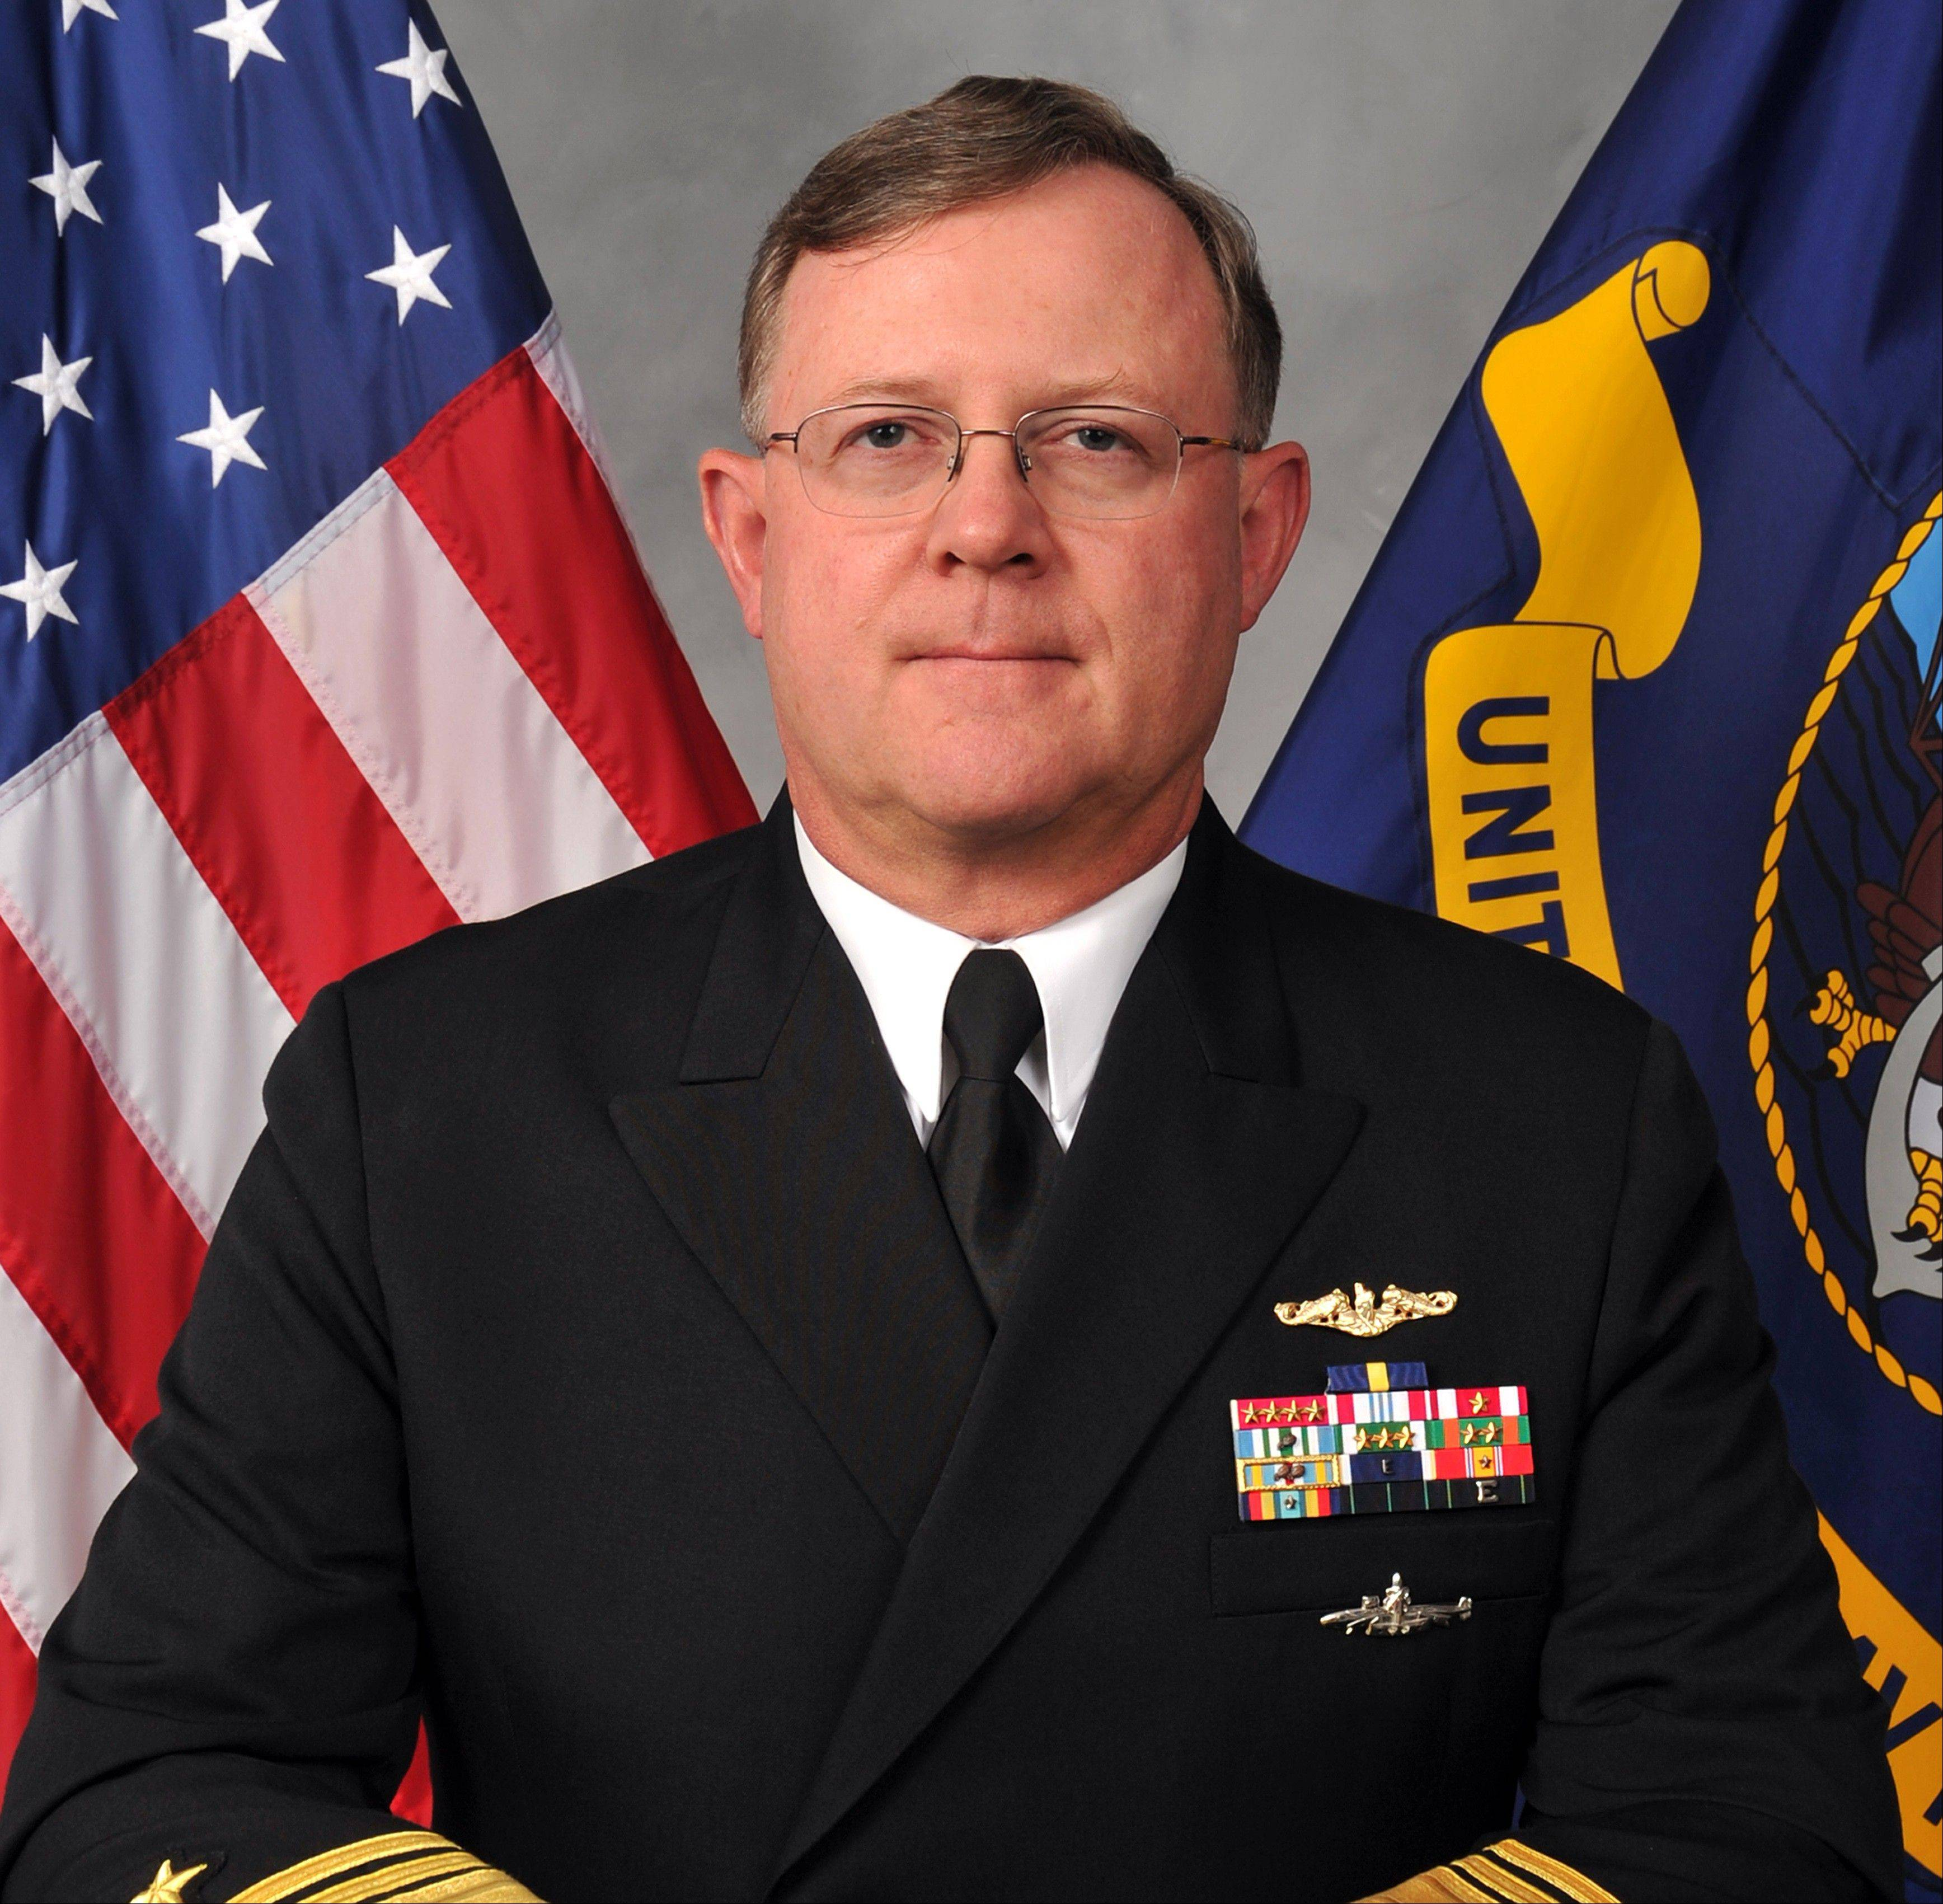 This image provided by the U.S. Navy shows Navy Vice Adm. Tim Giardina in a Nov. 11, 2011, photo. The U.S. strategic Command, the military command in charge of all U.S. nuclear warfighting forces says it has suspended its No. 2 commander, Giardina, and he is under investigation by the Naval Criminal Investigative Service.